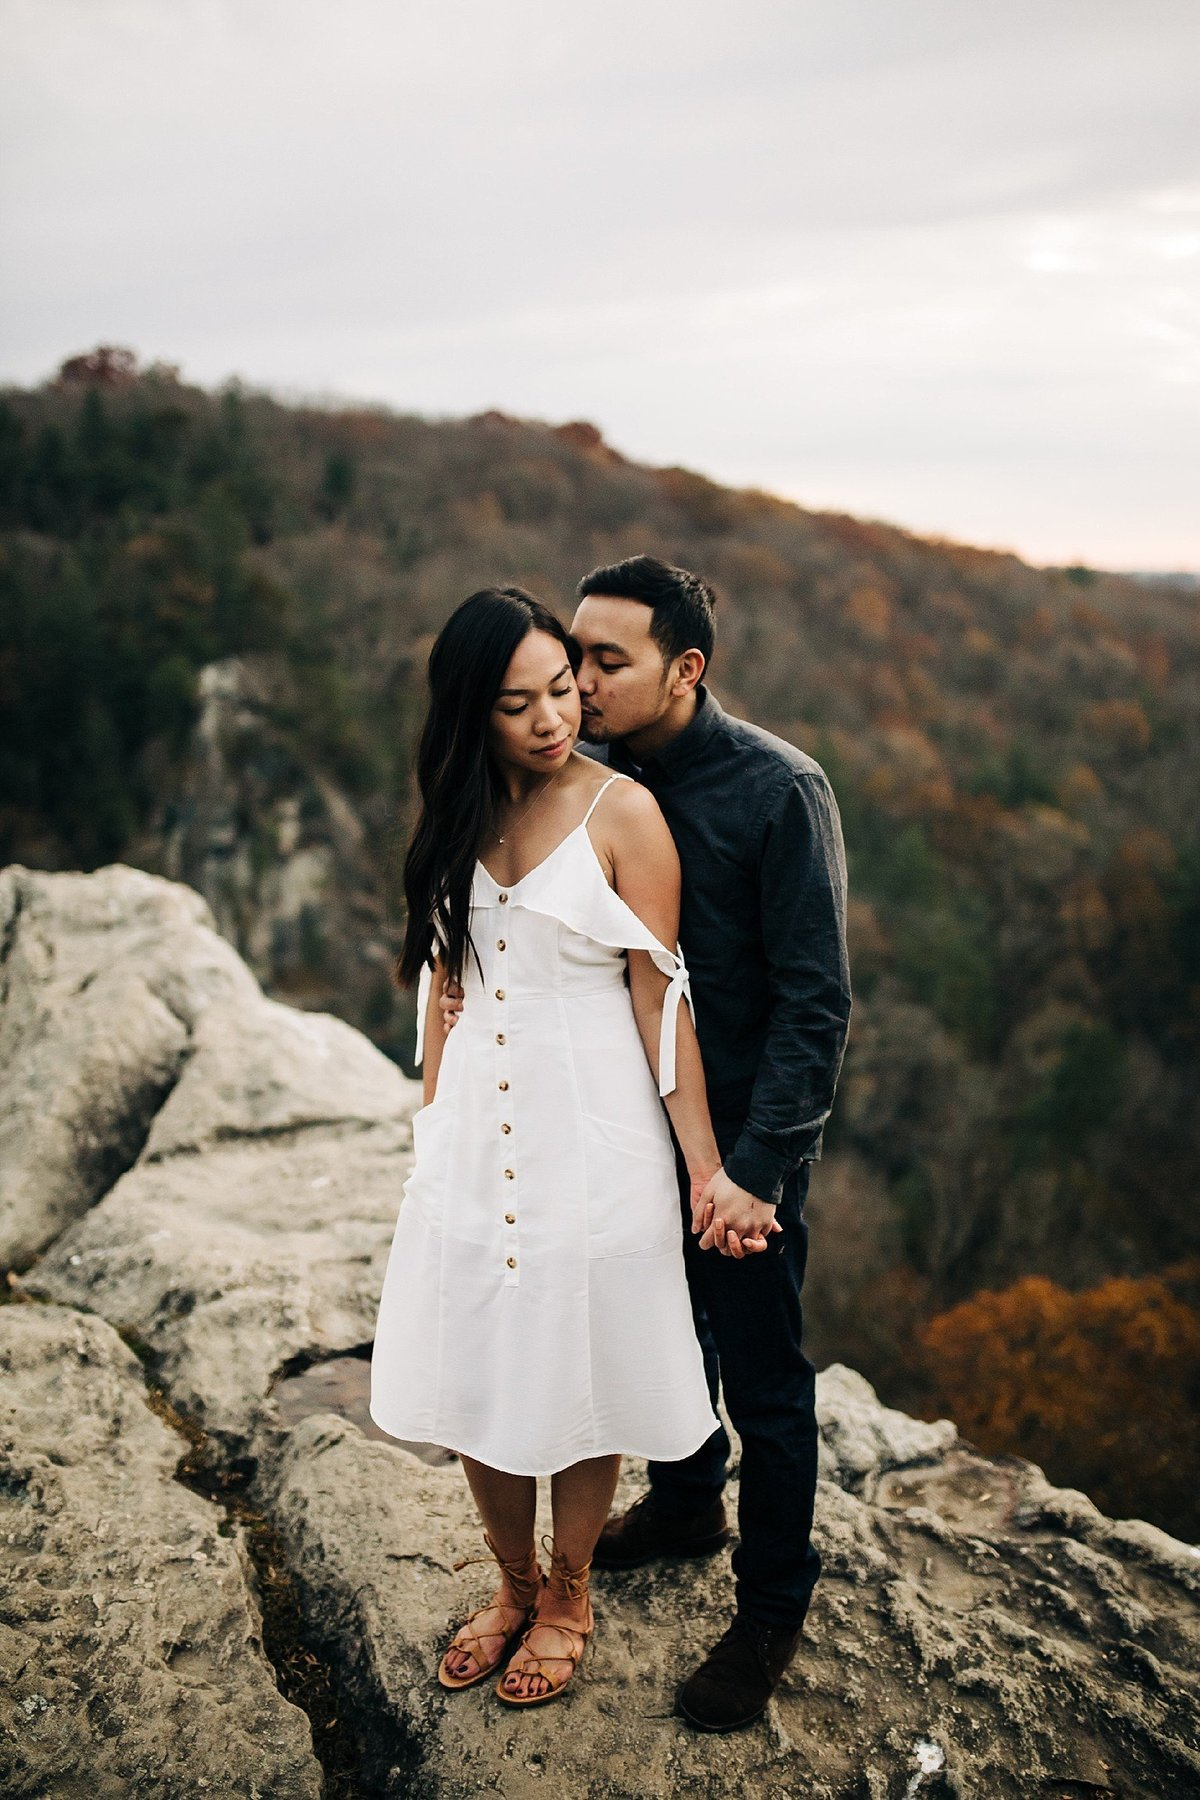 rocks-state-park-maryland-sunrise-engagement-session-rebecca-renner-photography_0004